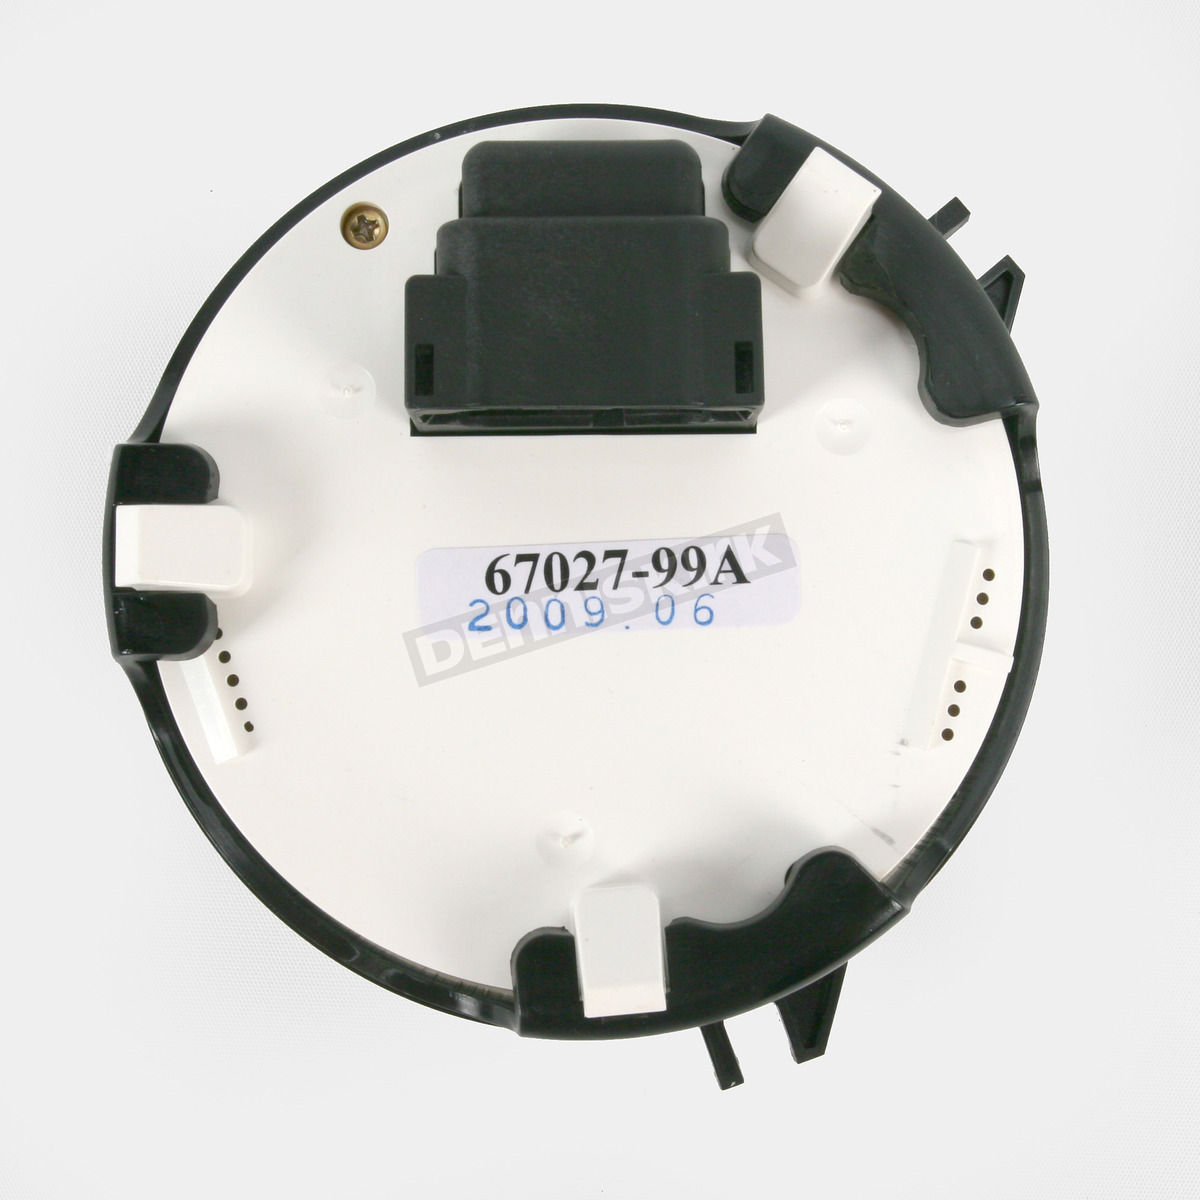 Electronic Sdometer - 2210-0104 on